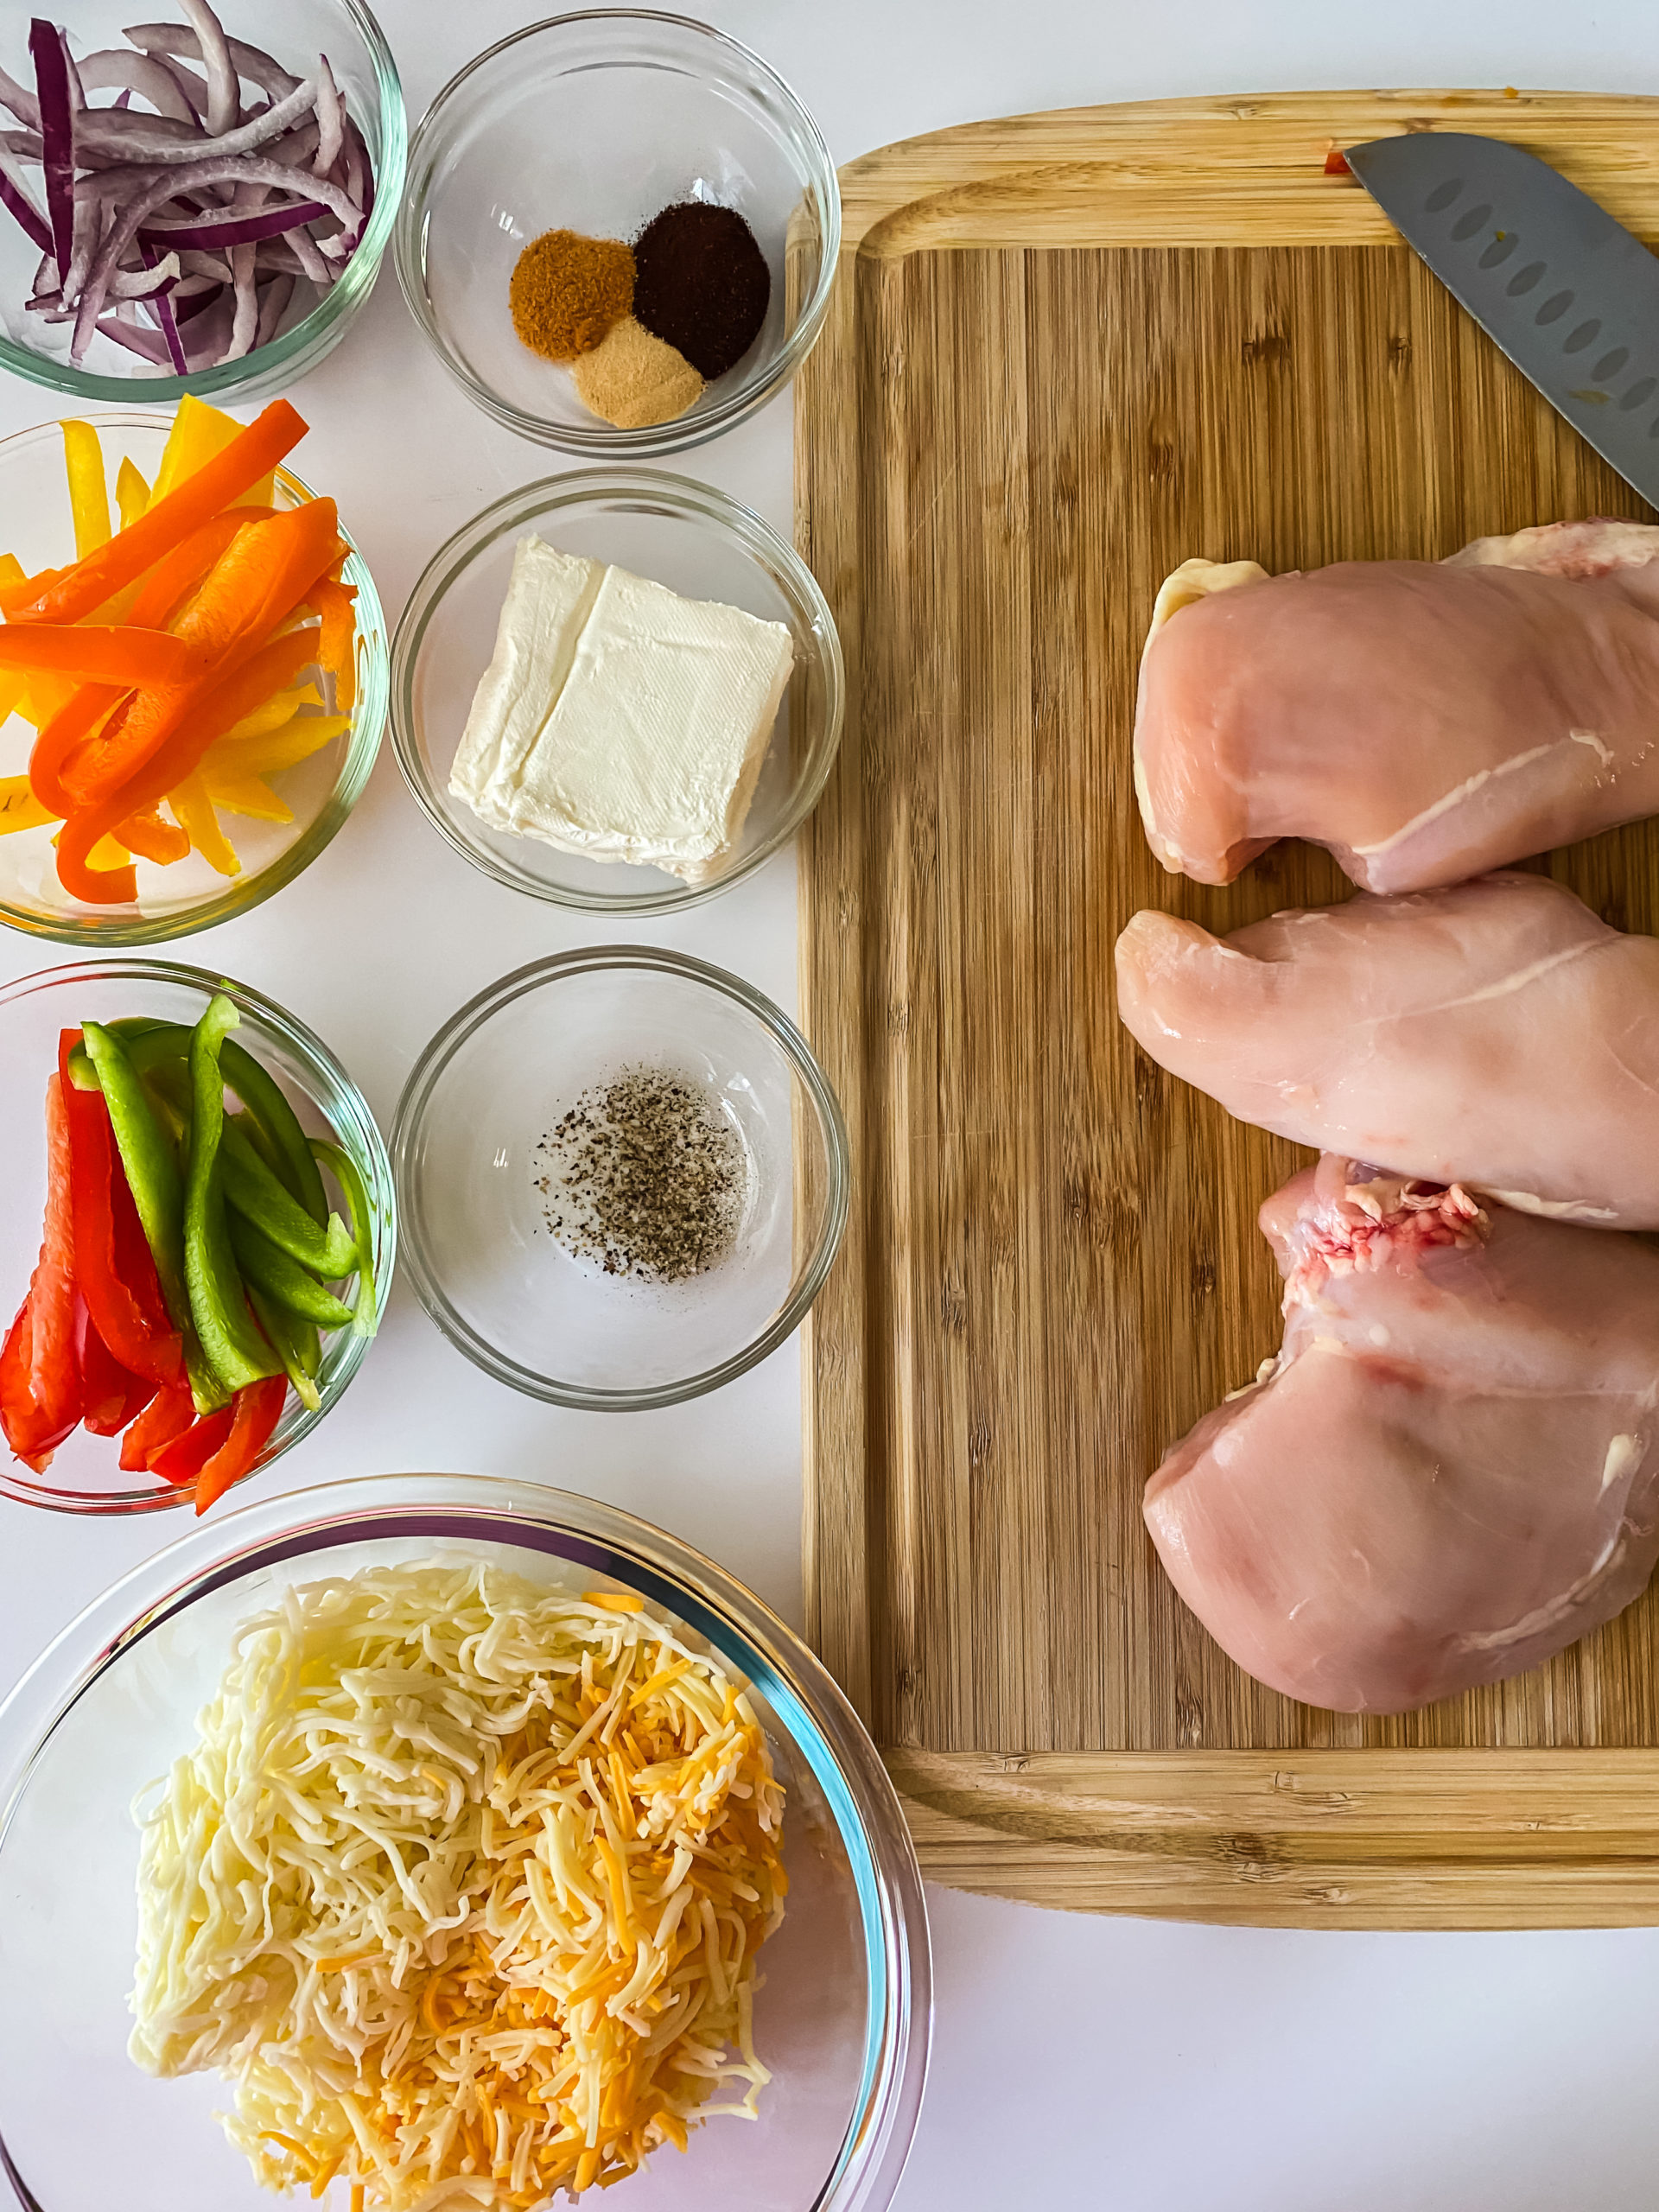 Chicken, cheese and vegetables needed to make stuffed fajitas.